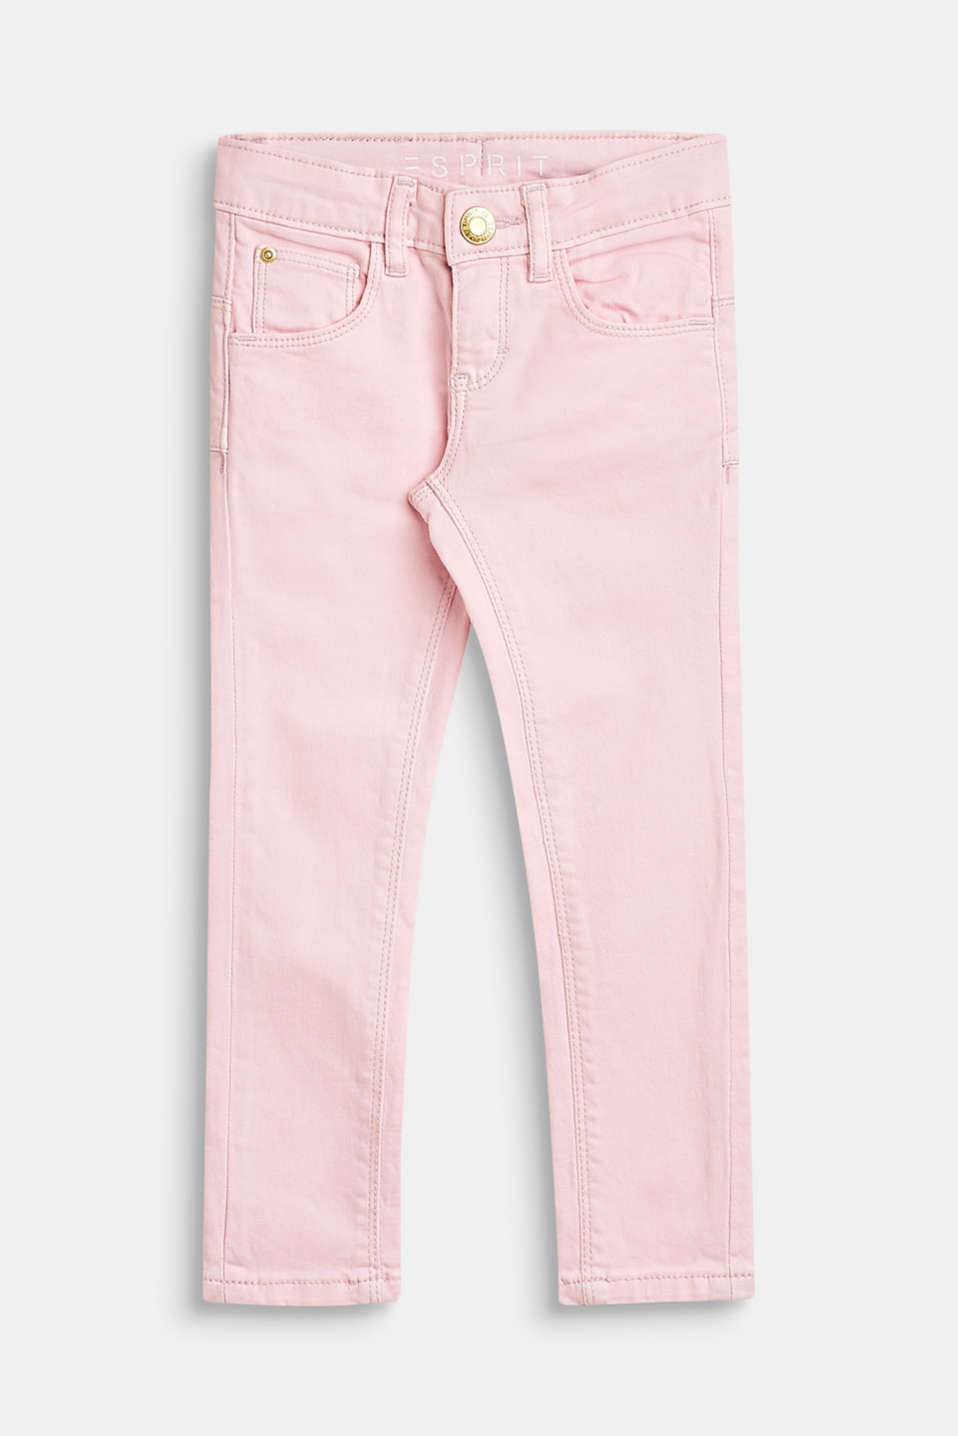 Stretch cotton trousers with an adjustable waistband, BLUSH, detail image number 0